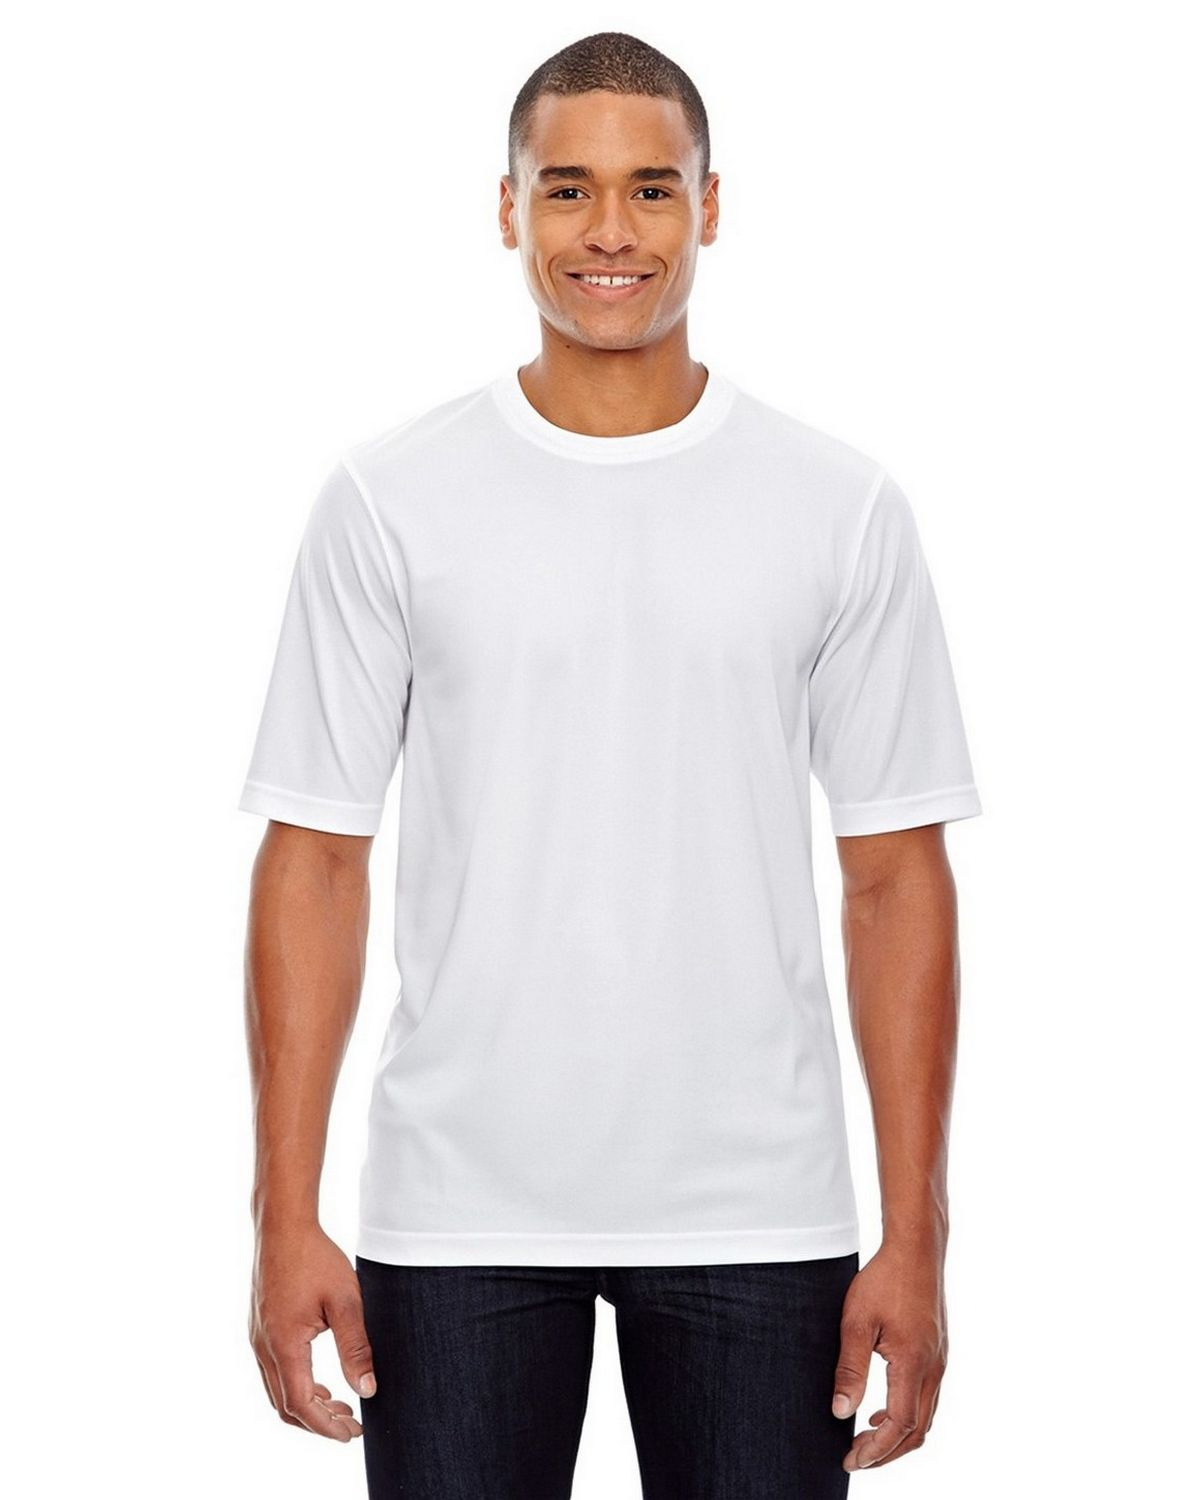 Core365 88182 Pace Mens Crew Neck T-Shirt - White - S 88182